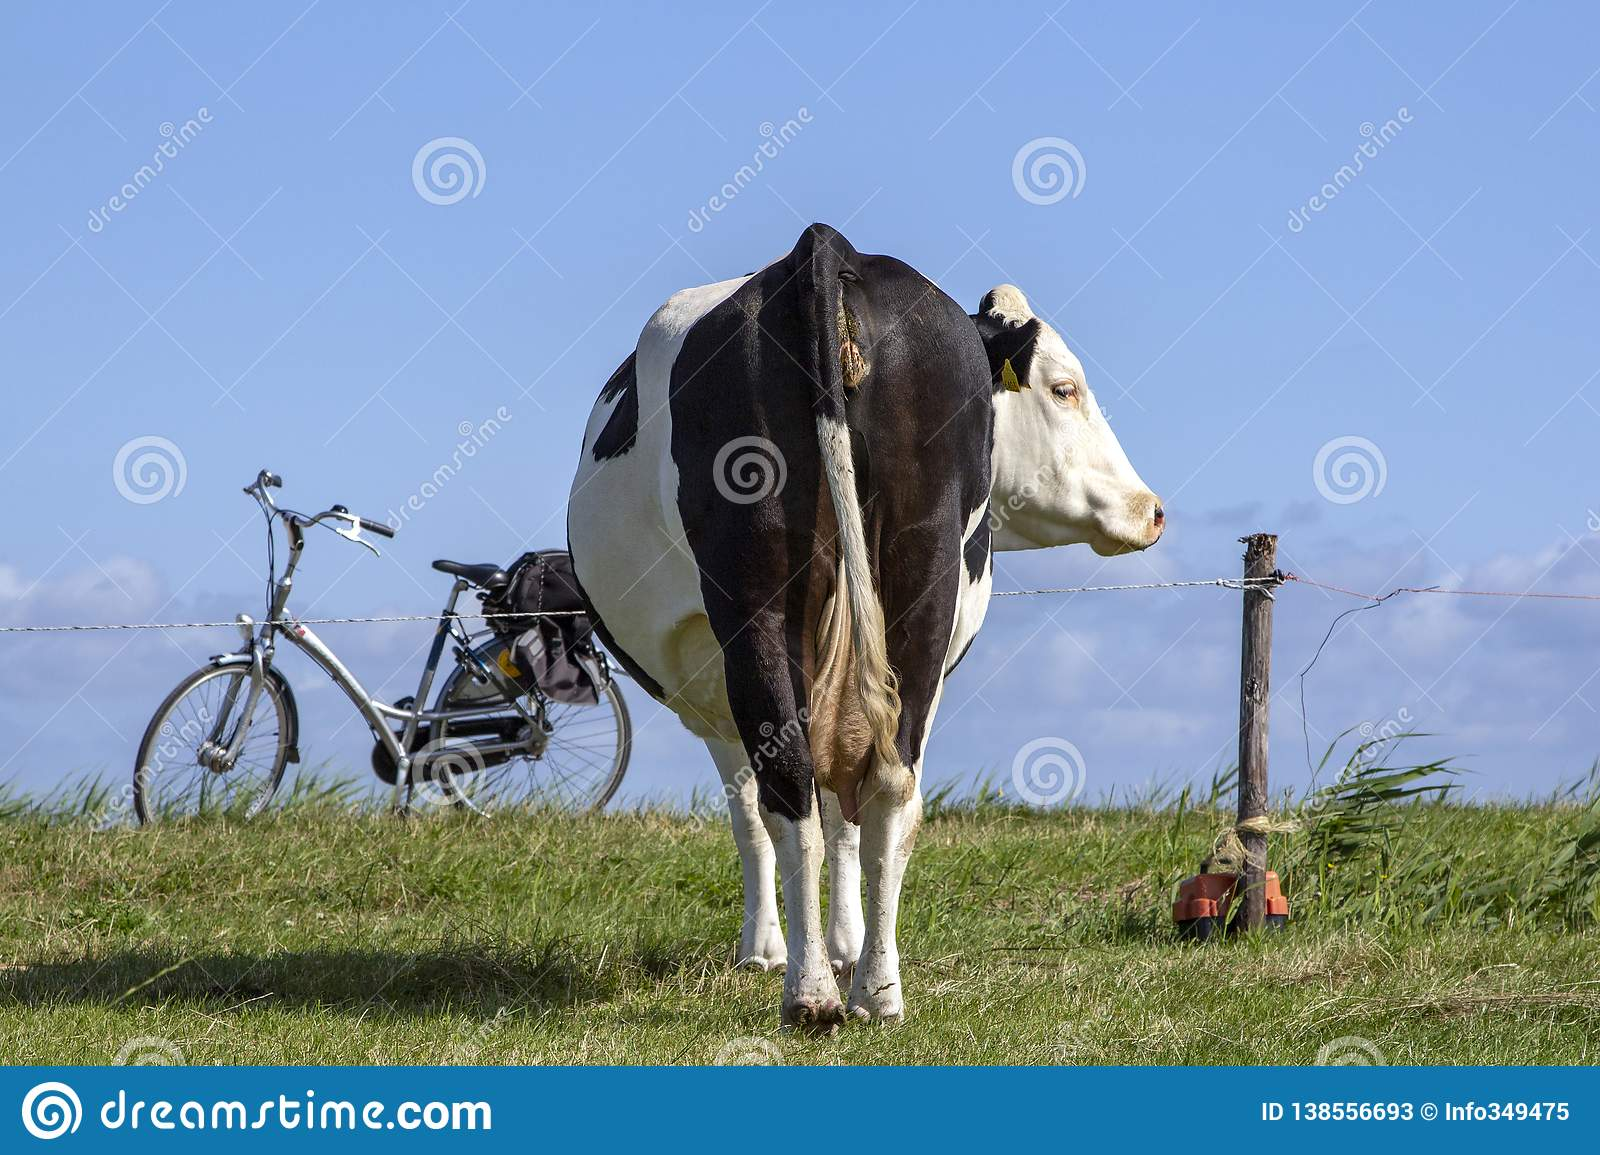 A cow from behind an electric fence and a bike on standard.